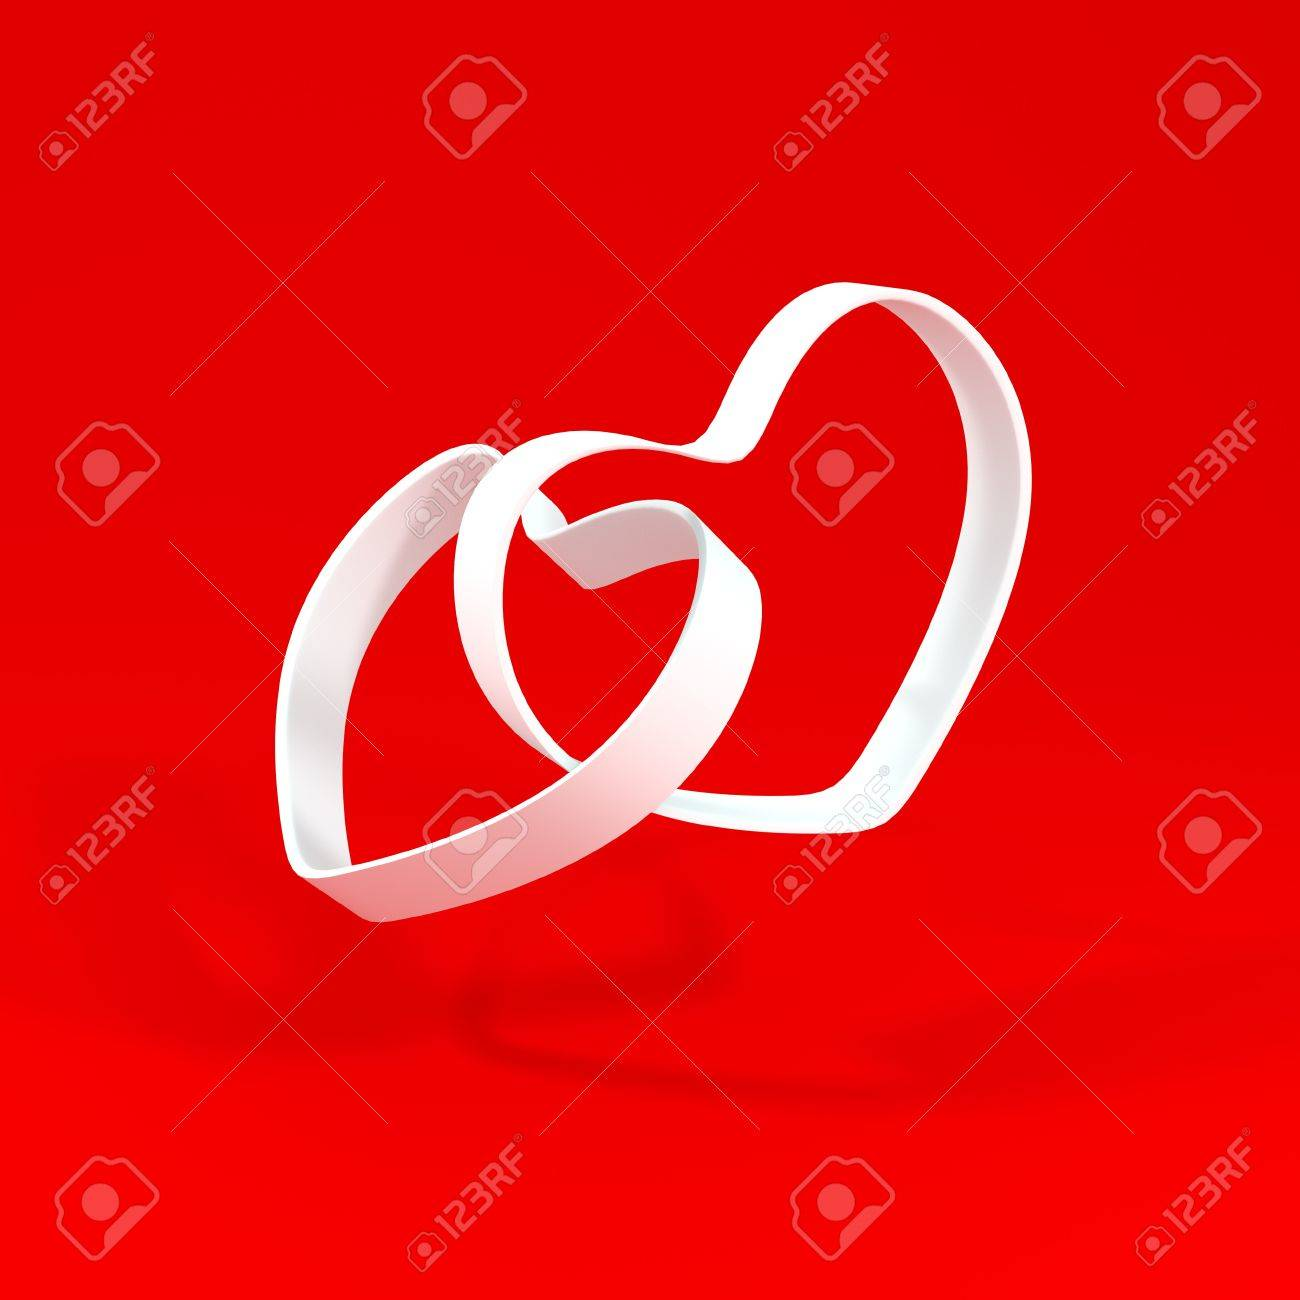 Two hearts on a red background. Stock 3D image Stock Photo - 15870562